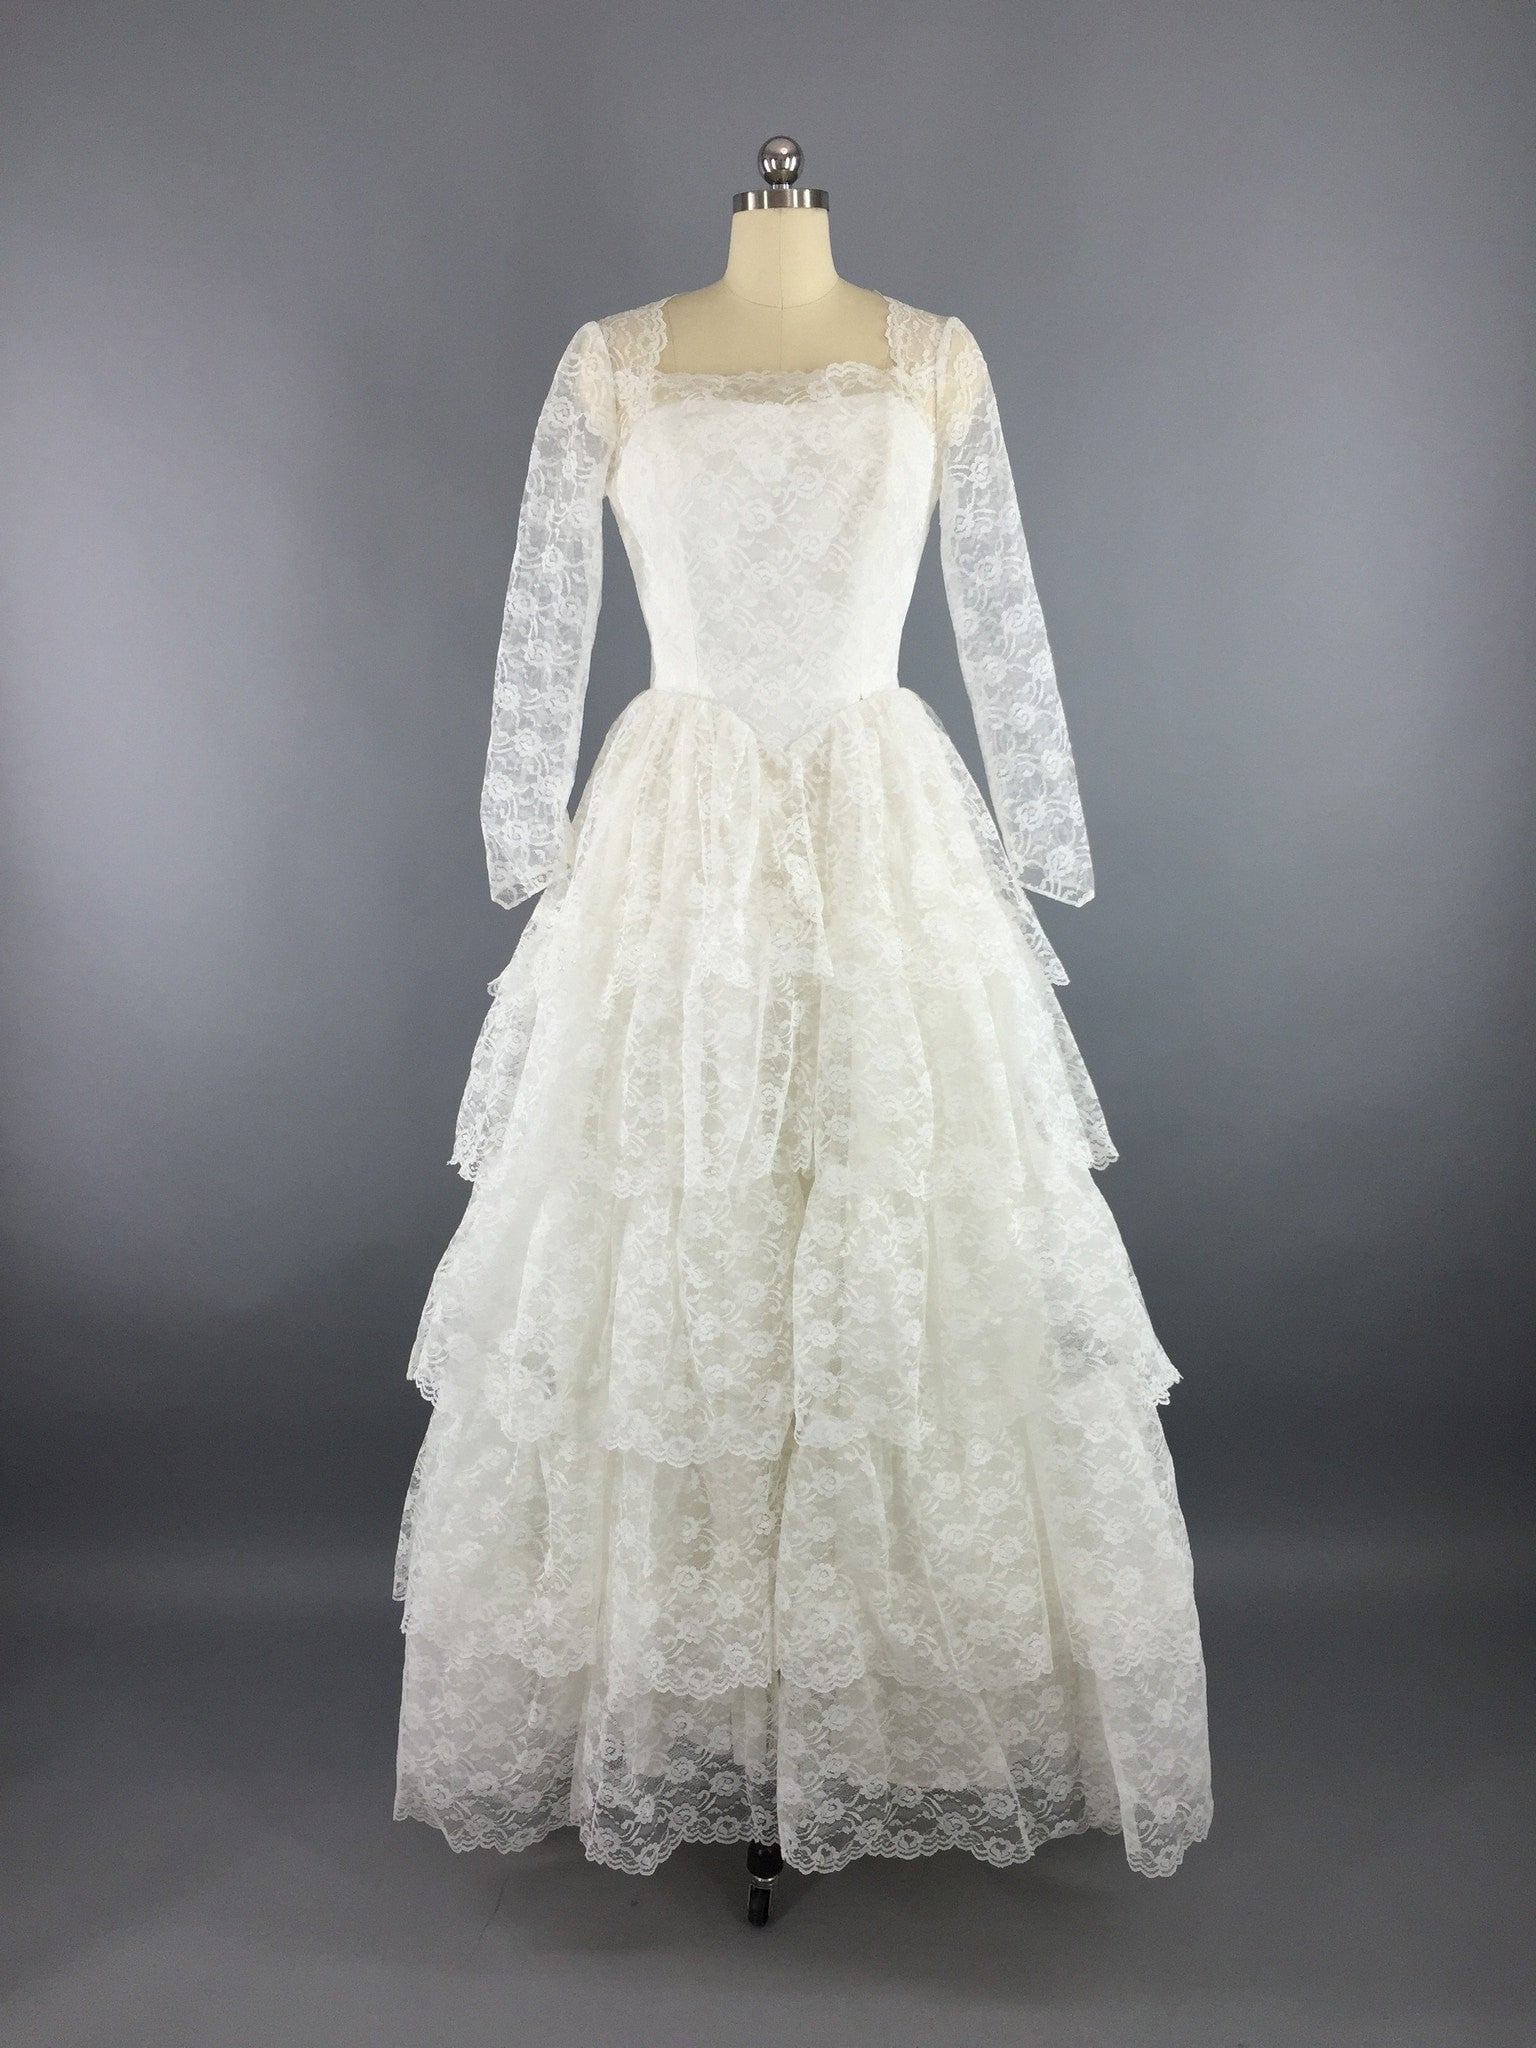 Vintage 1950s Wedding Dress / Tiered Lace Bridal Gown - ThisBlueBird ...